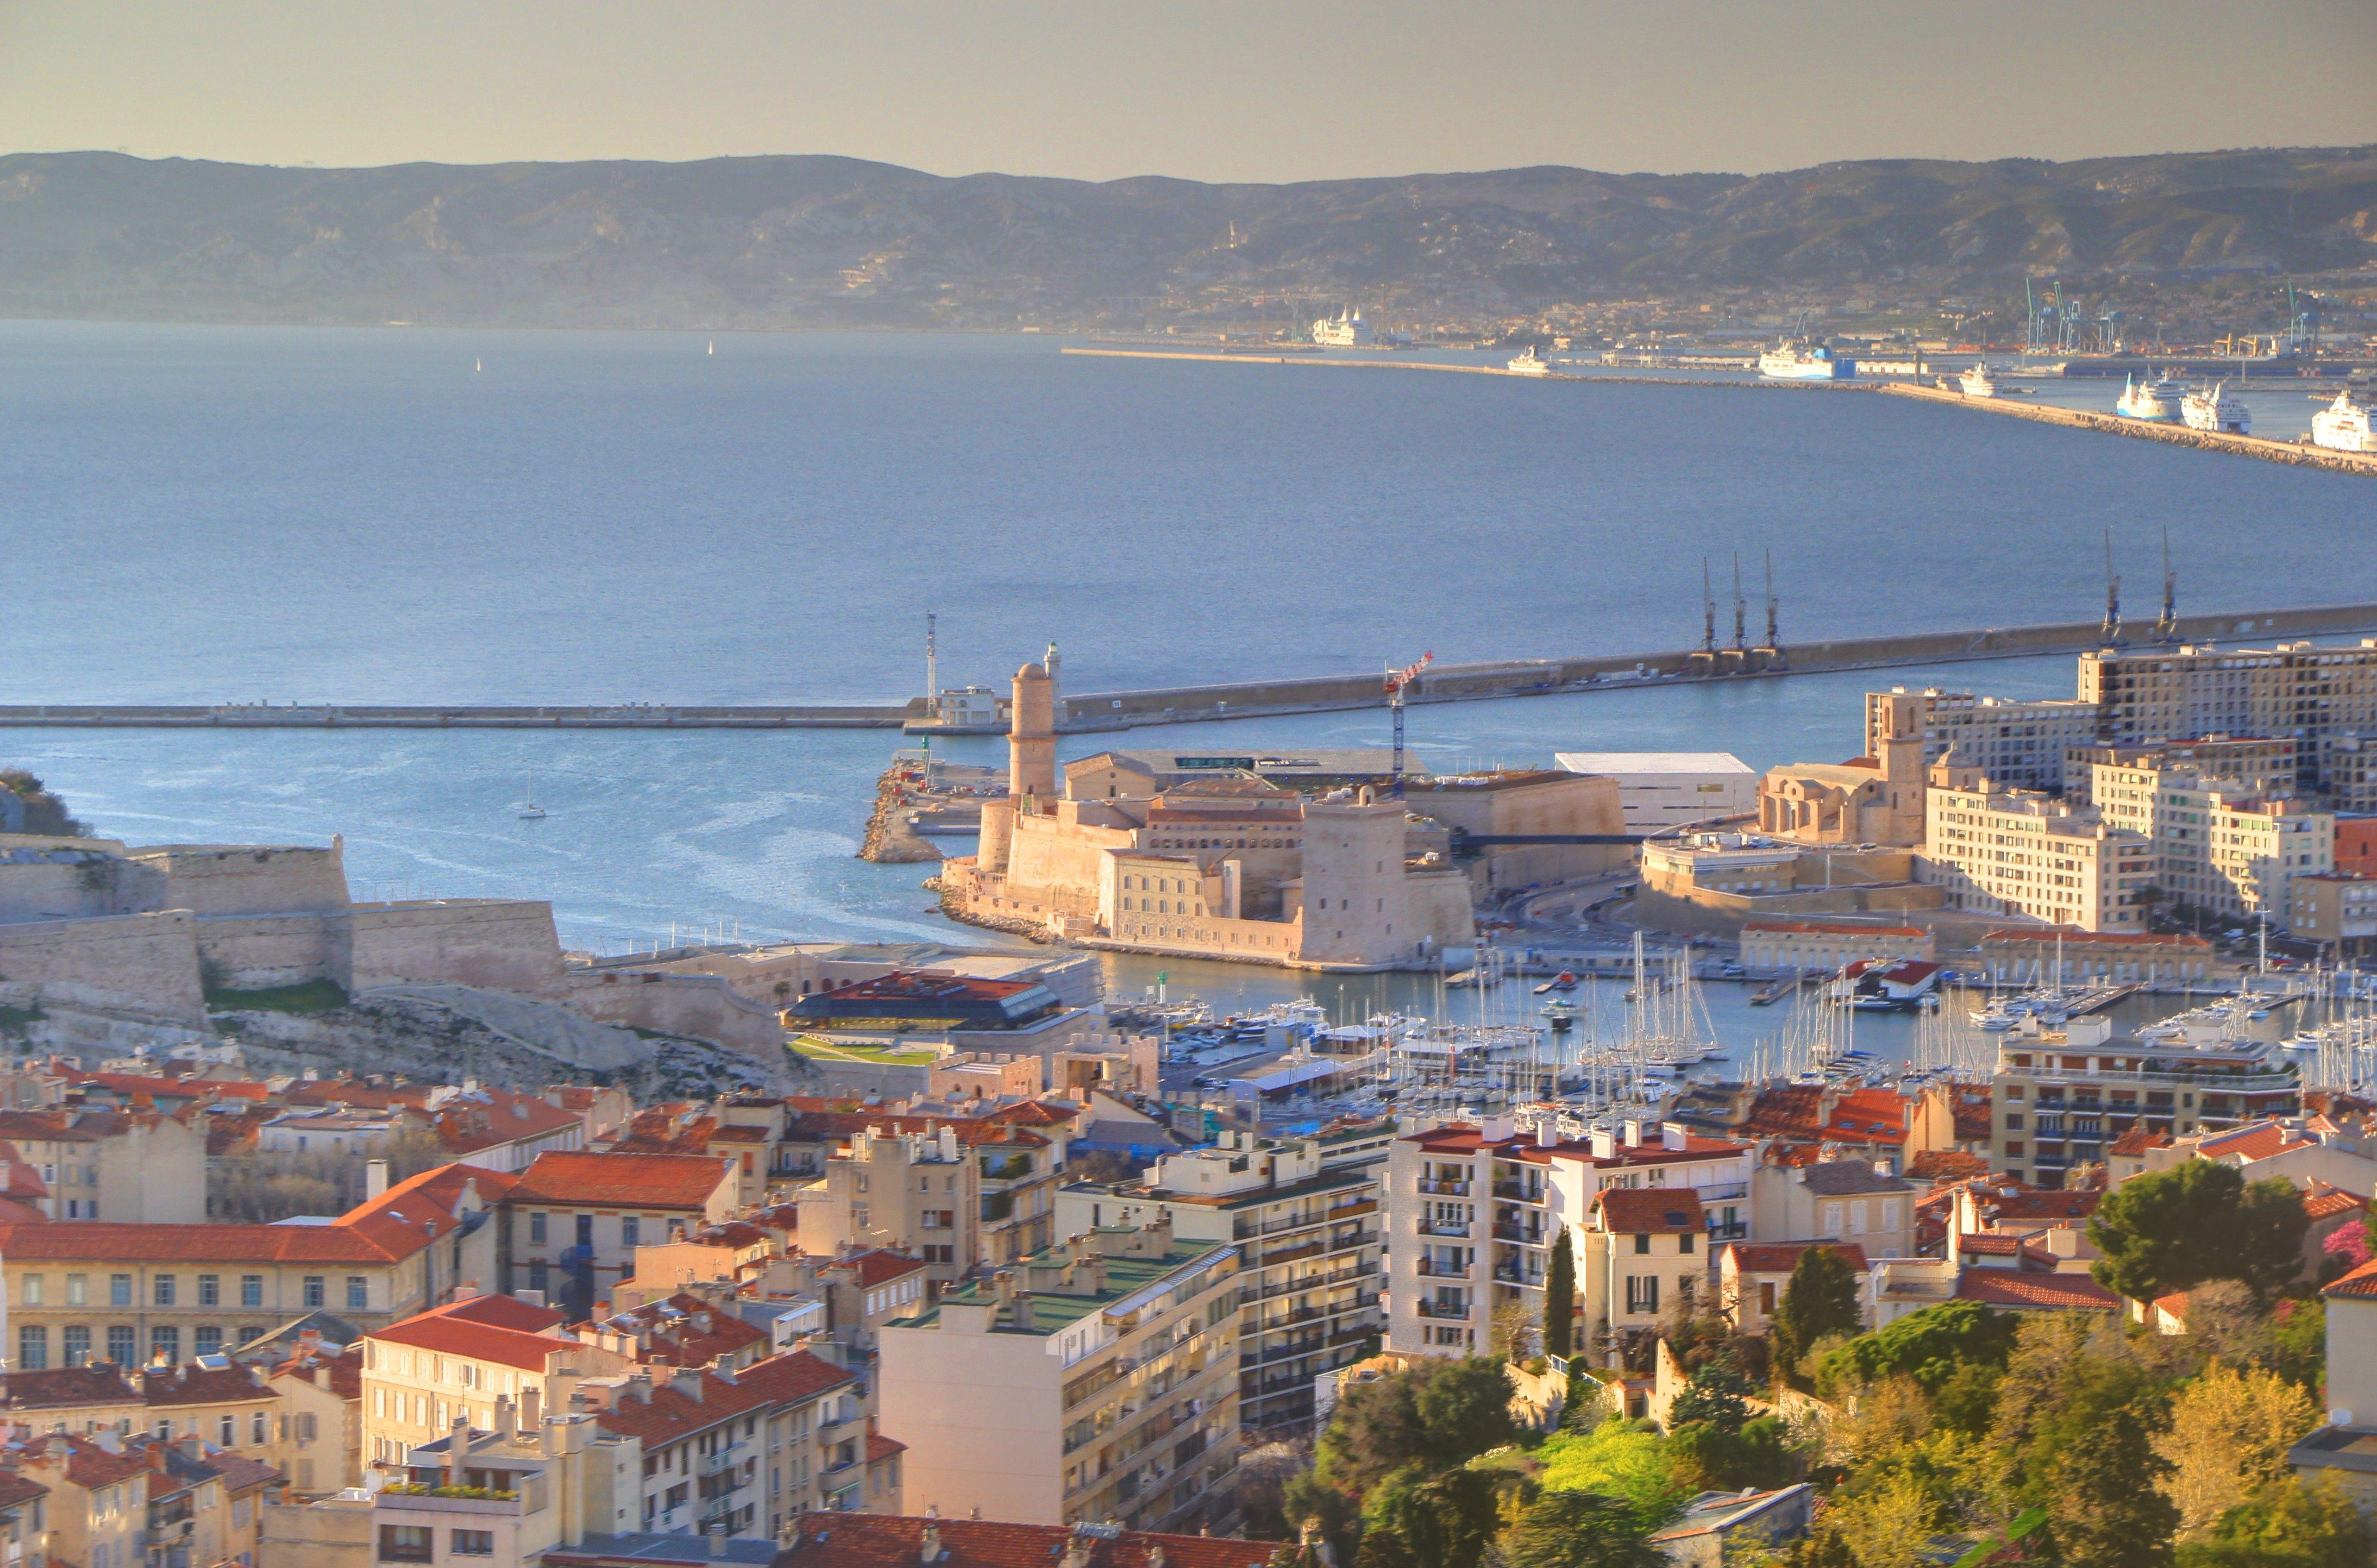 Tourism in Marseille, France wallpapers and image